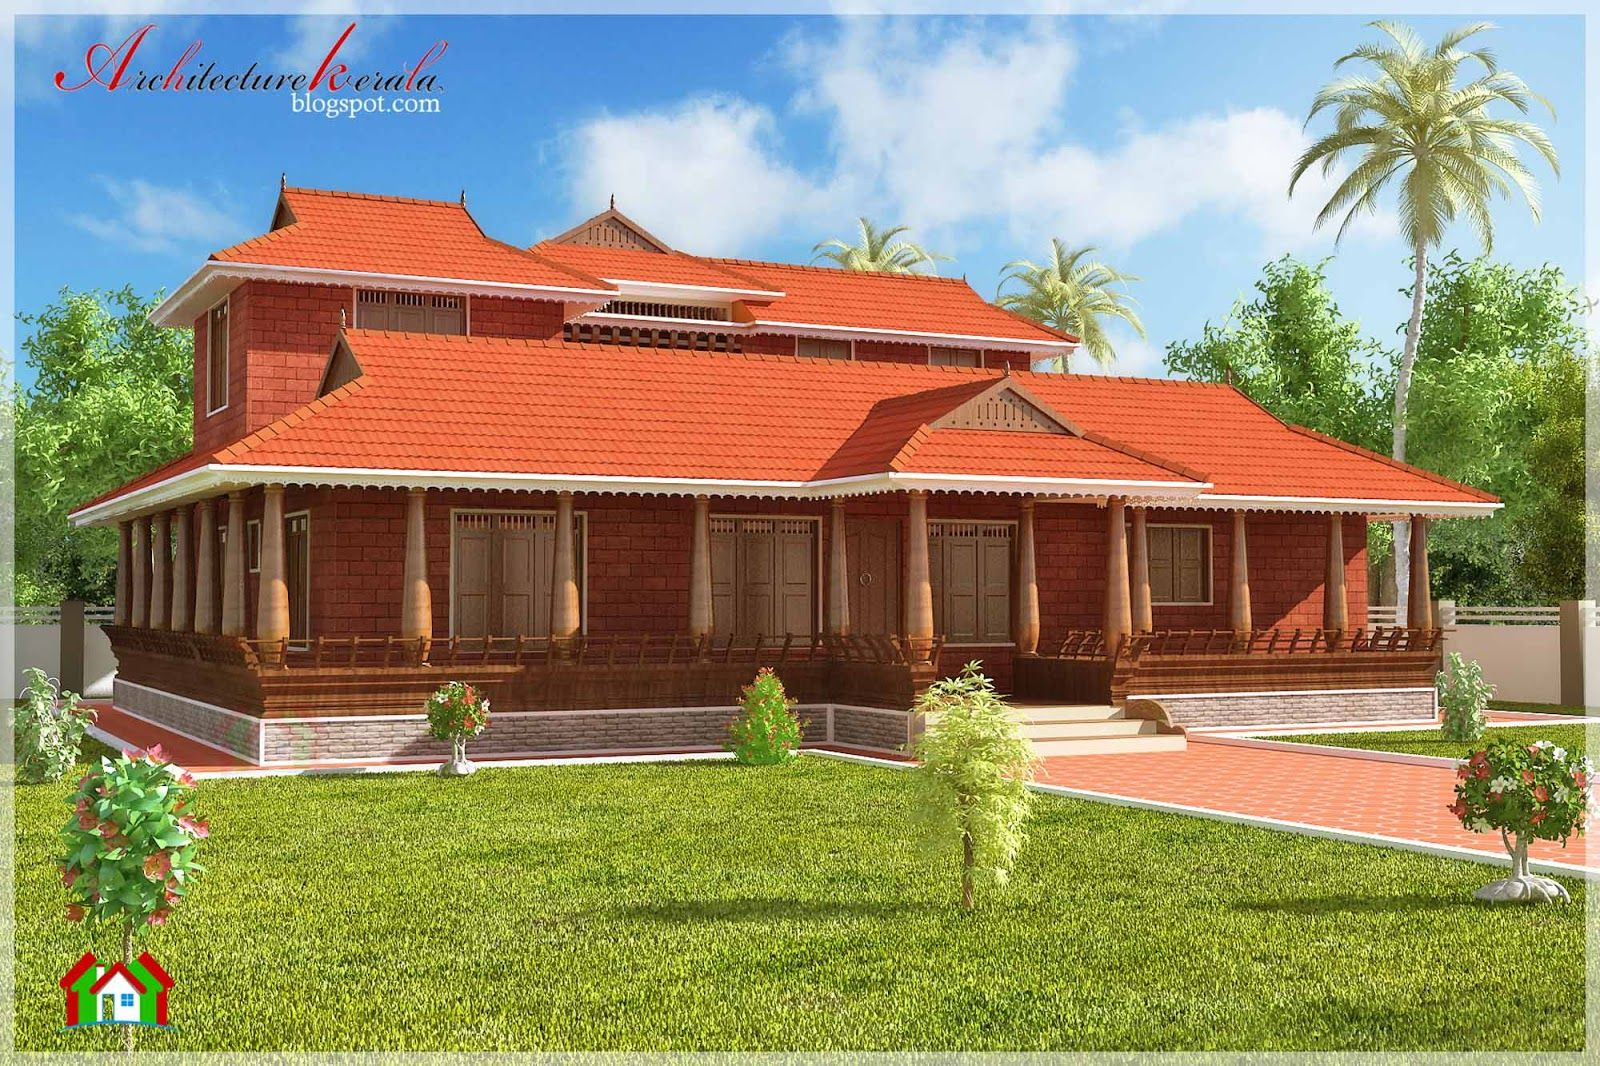 Architecture Design Kerala Model orange house | architecture kerala: nalukettu style kerala house